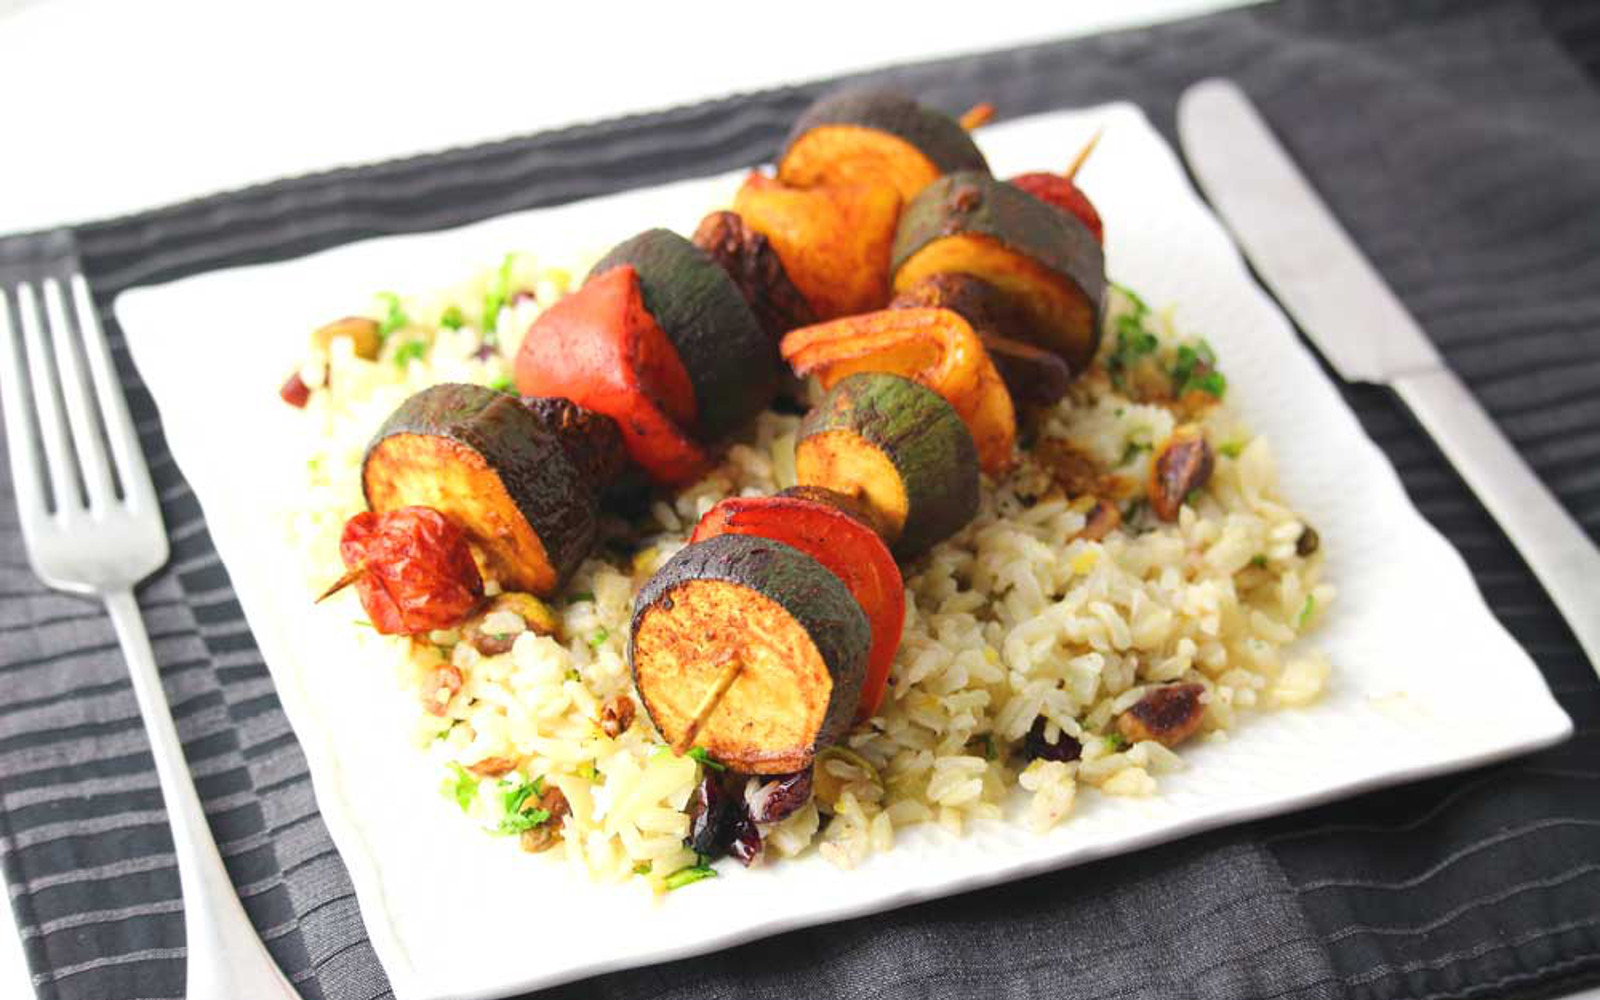 BBQ Veggie Skewers with loaded rice